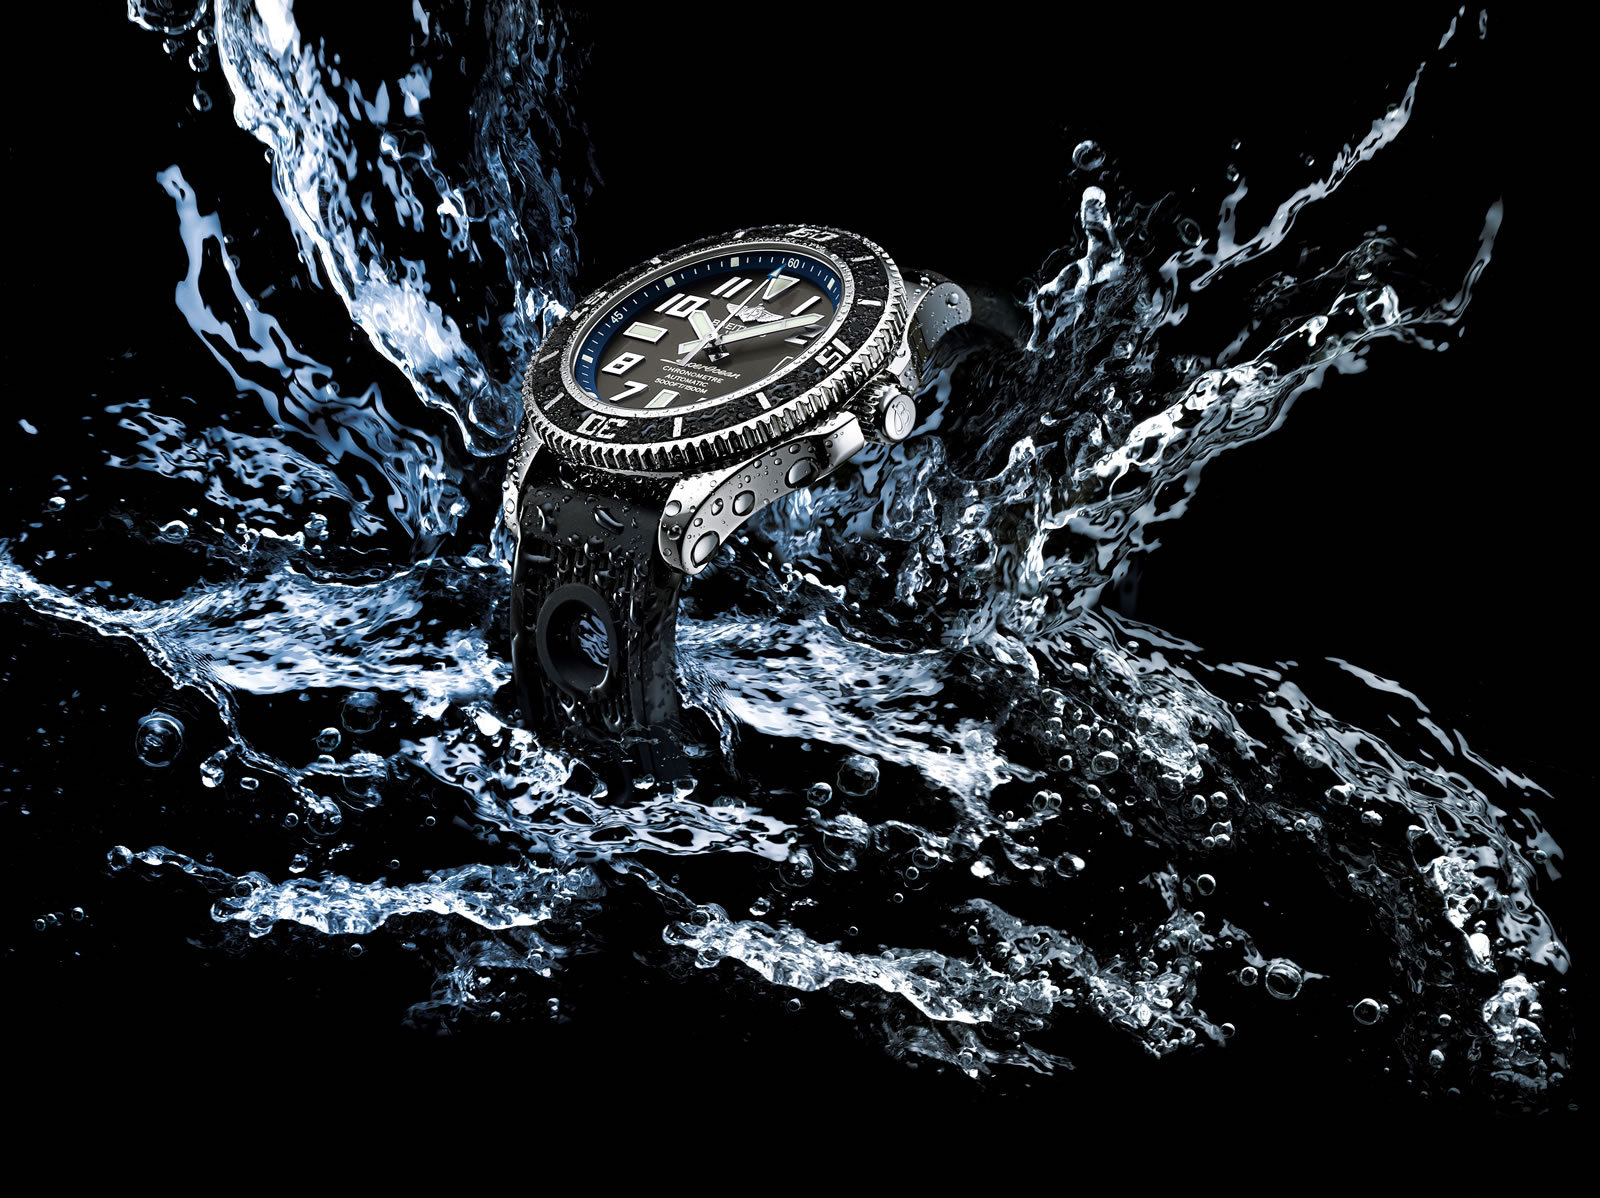 22463 download wallpaper Water, Objects, Clock screensavers and pictures for free